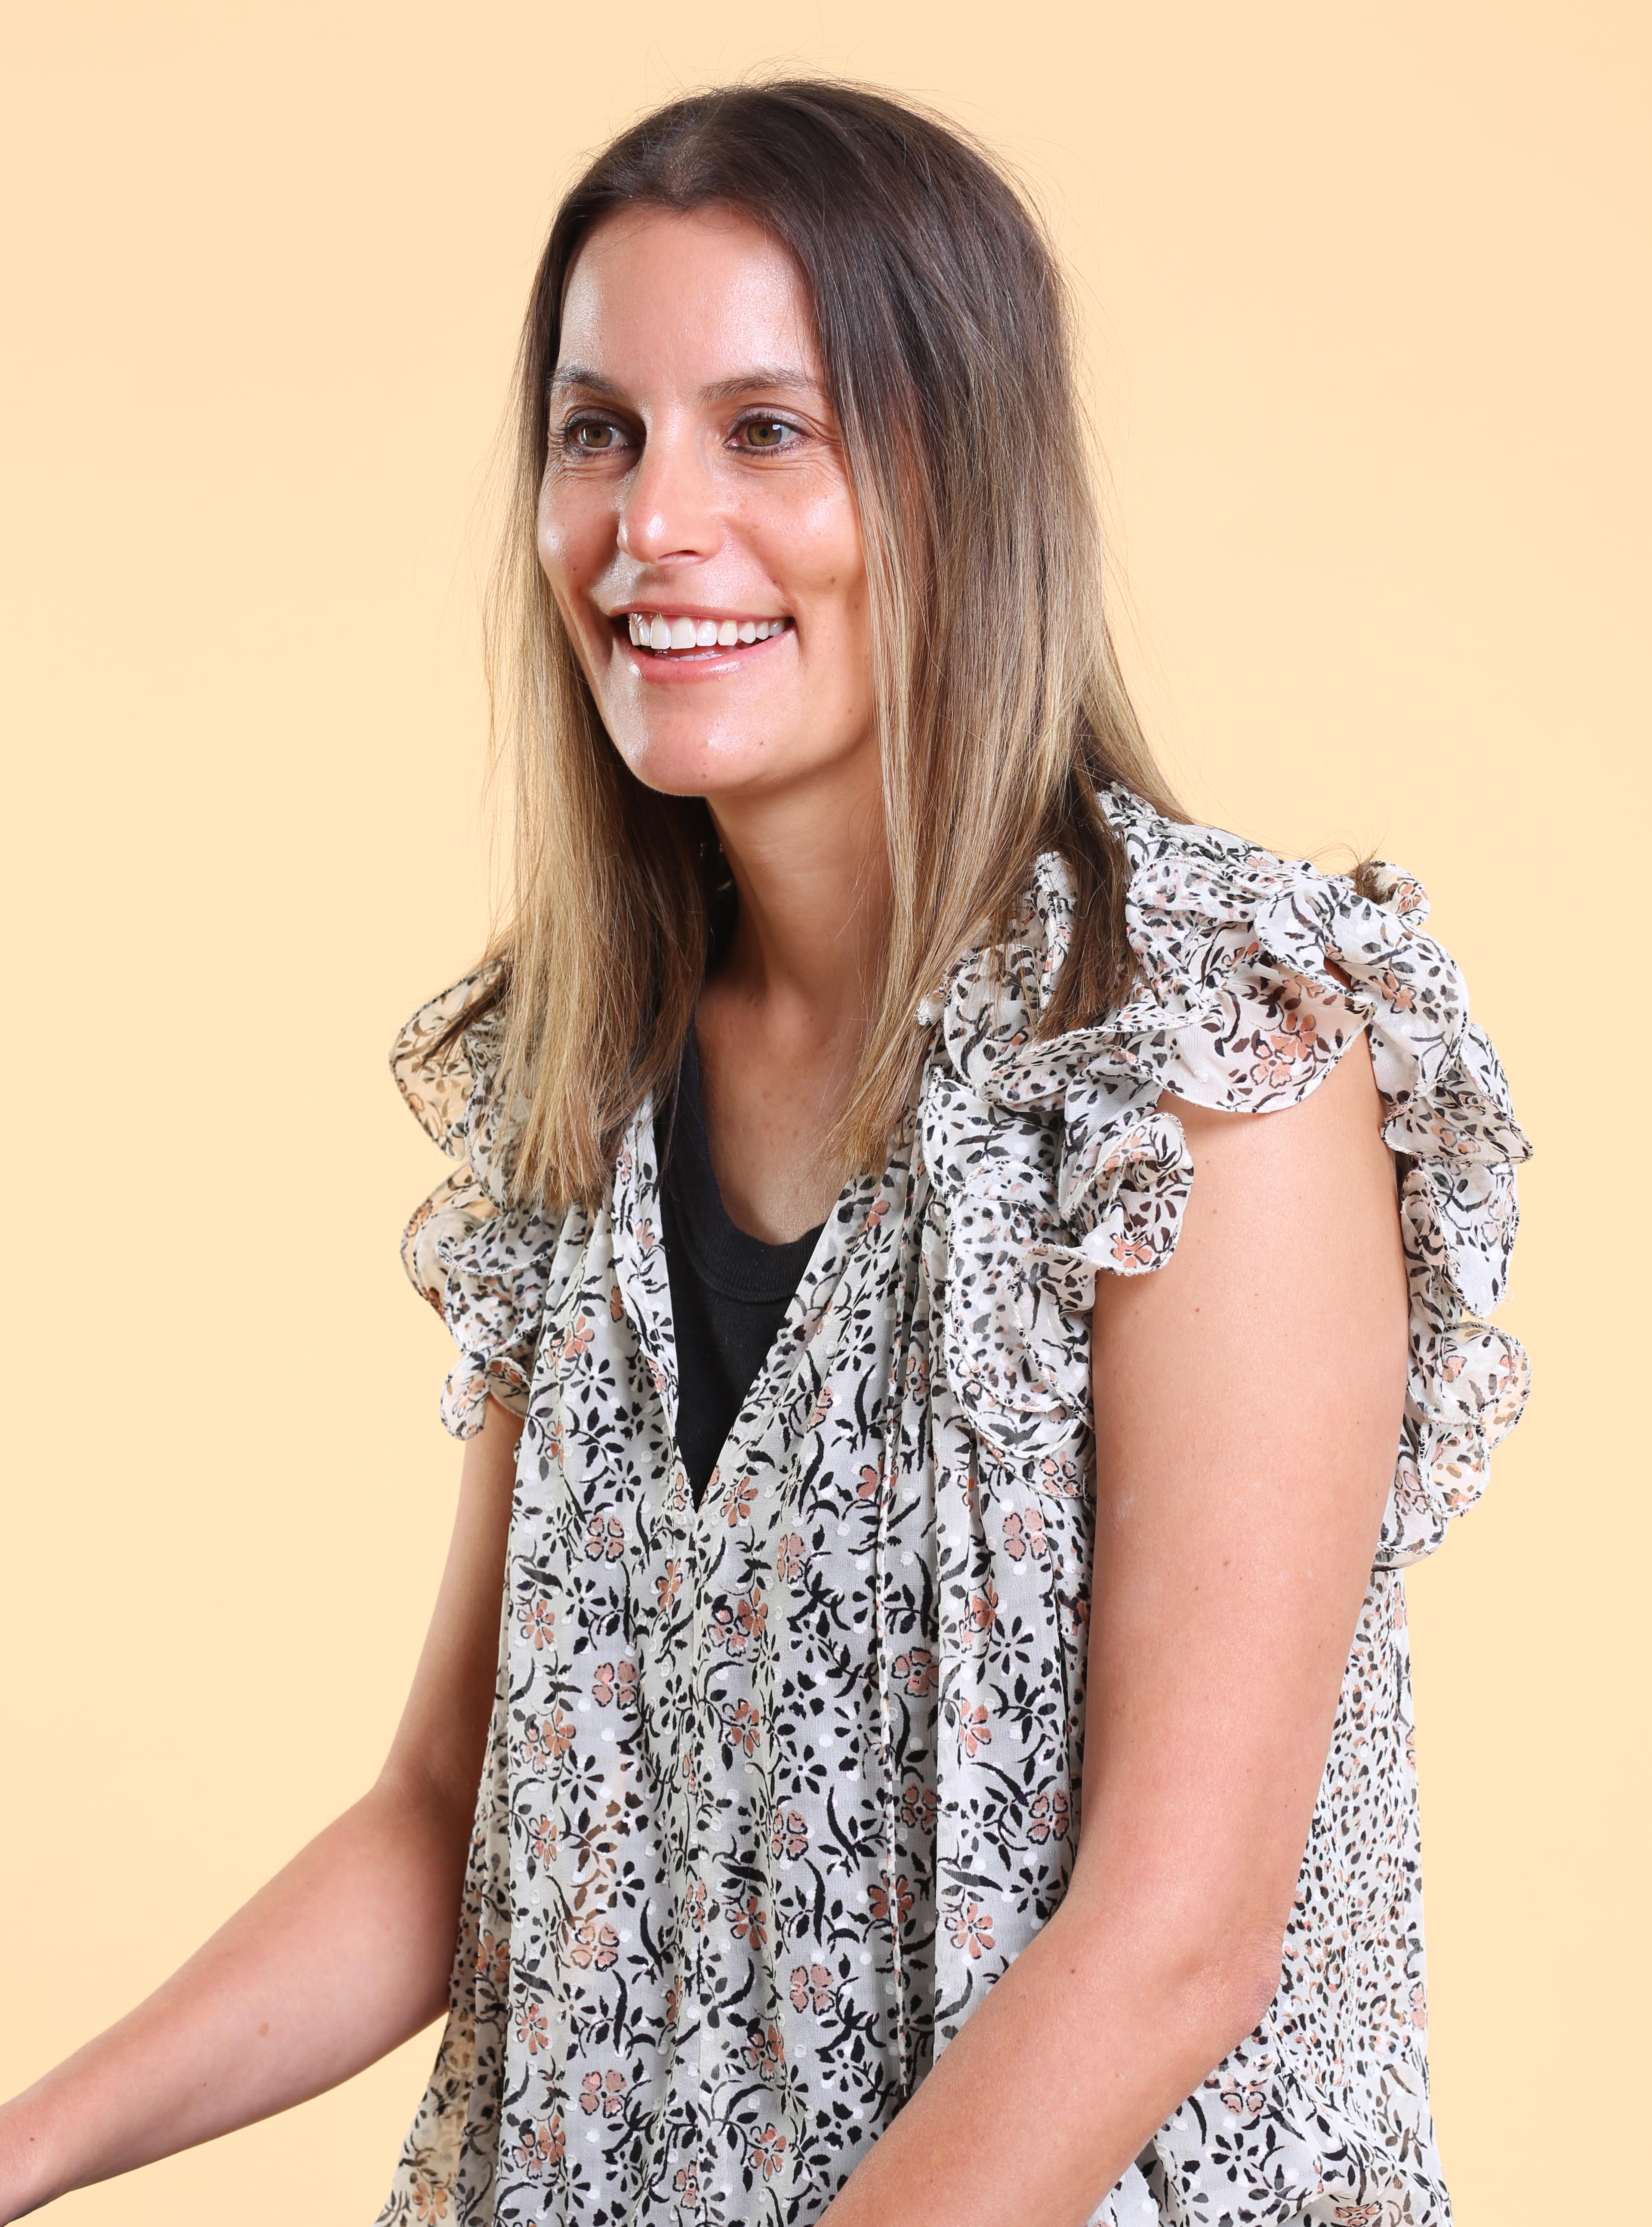 Renae James, Founder, CEO and Designer of Papinelle